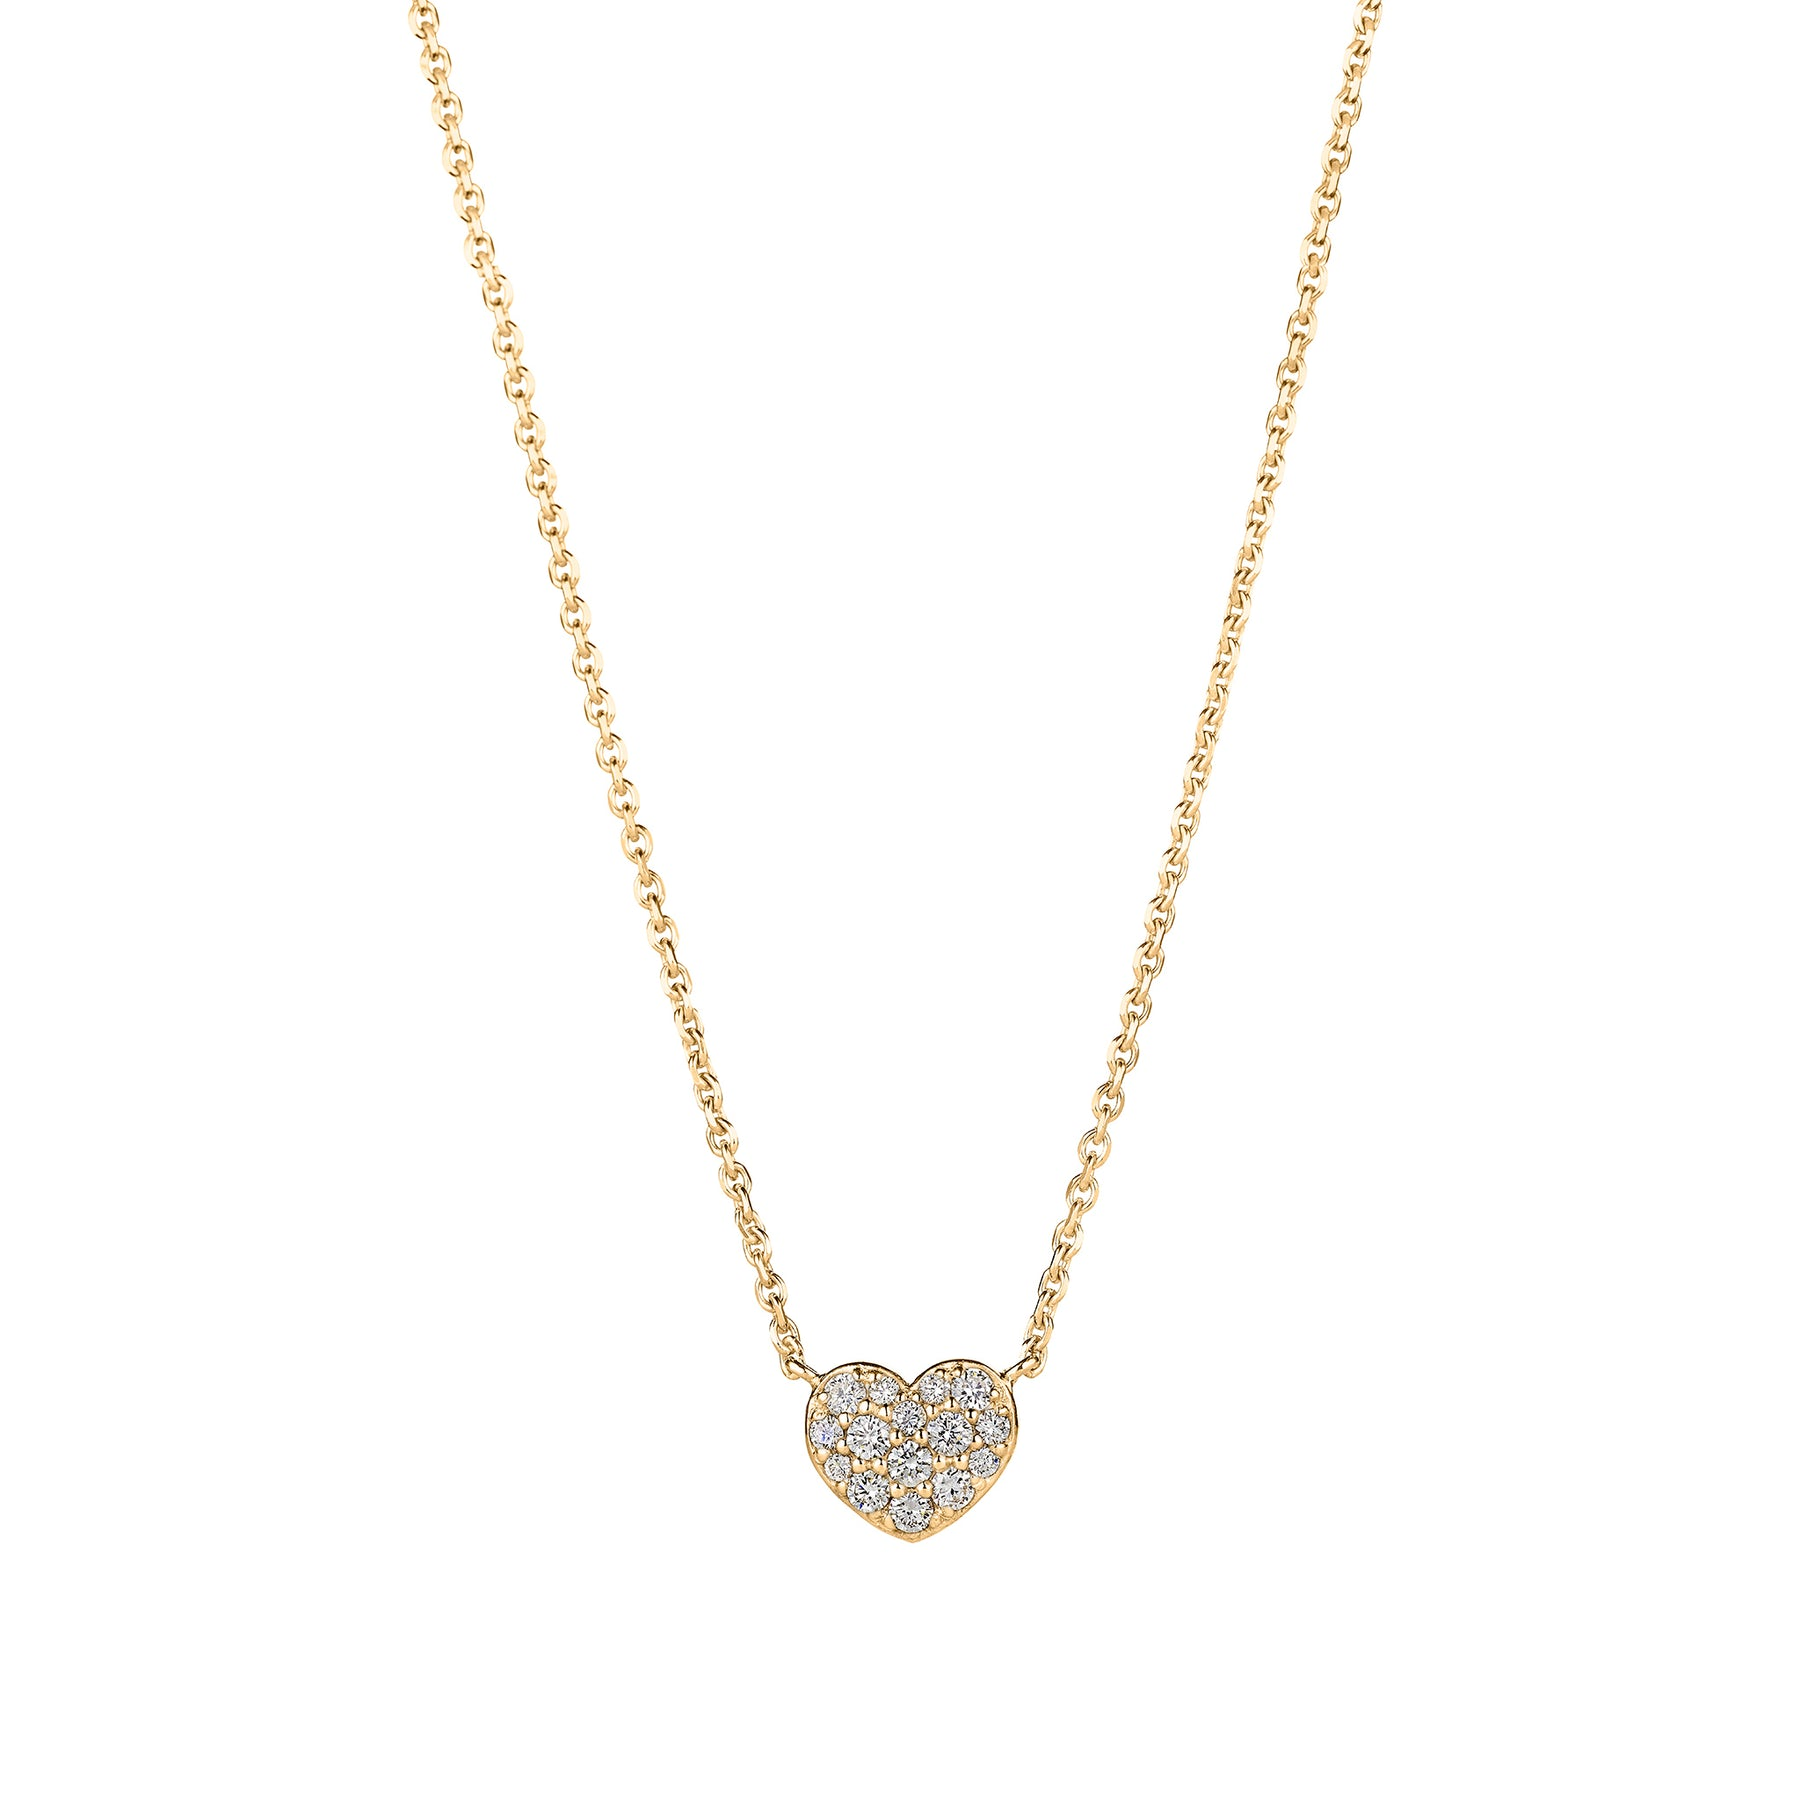 Mimi-So-Diamond-Heart-Necklace_18k Yellow Gold